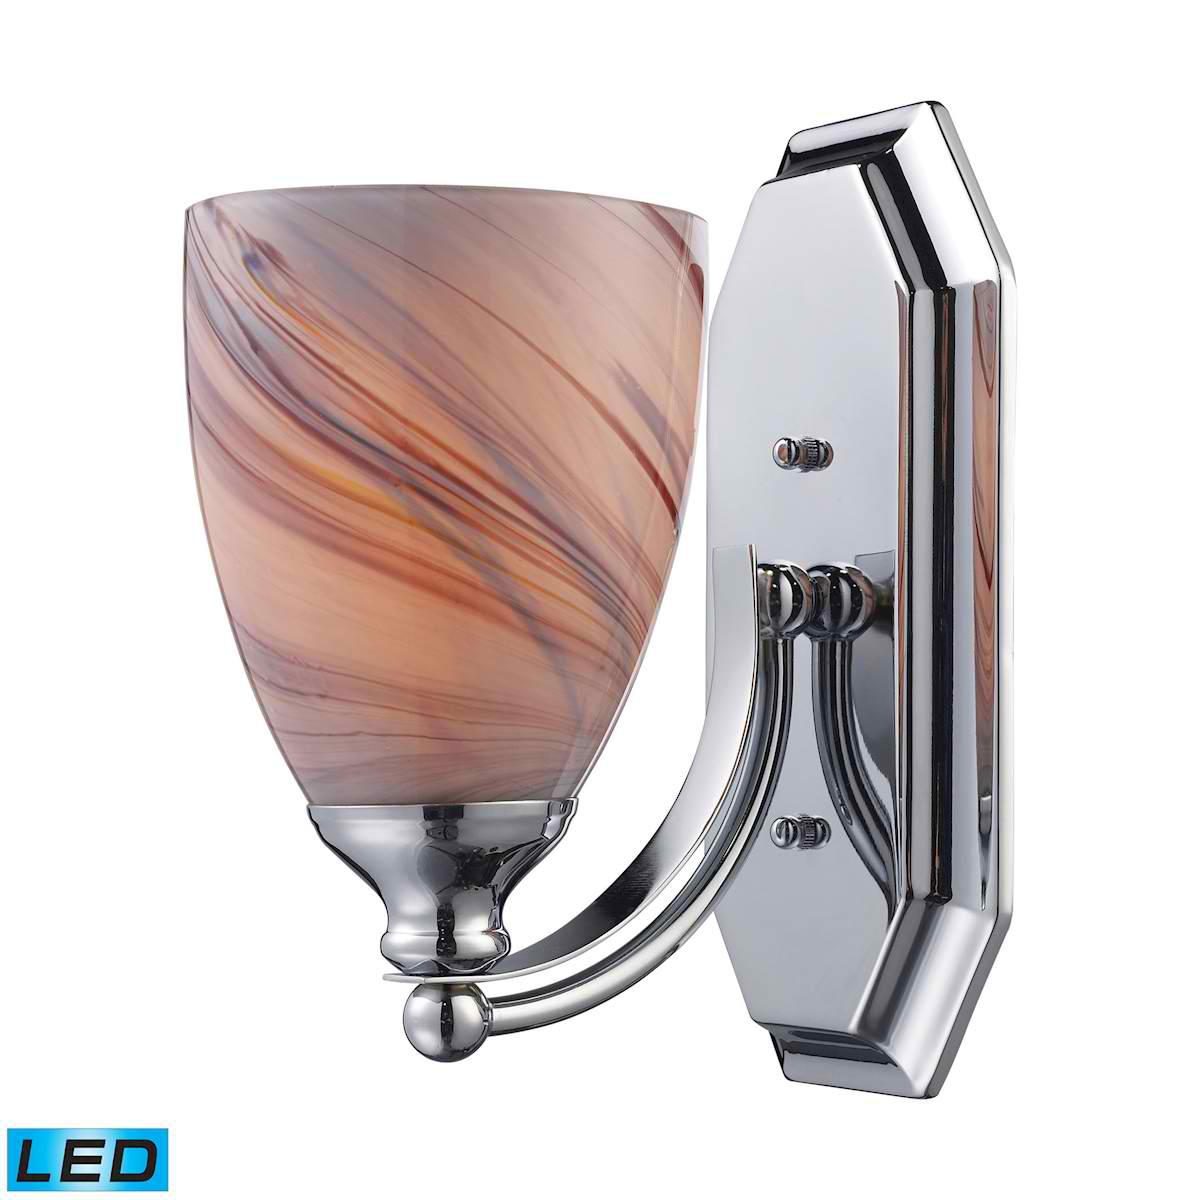 1 Light Vanity in Polished Chrome and Creme Glass - LED Offering Up To 800 Lumens (60 Watt Equivalent)